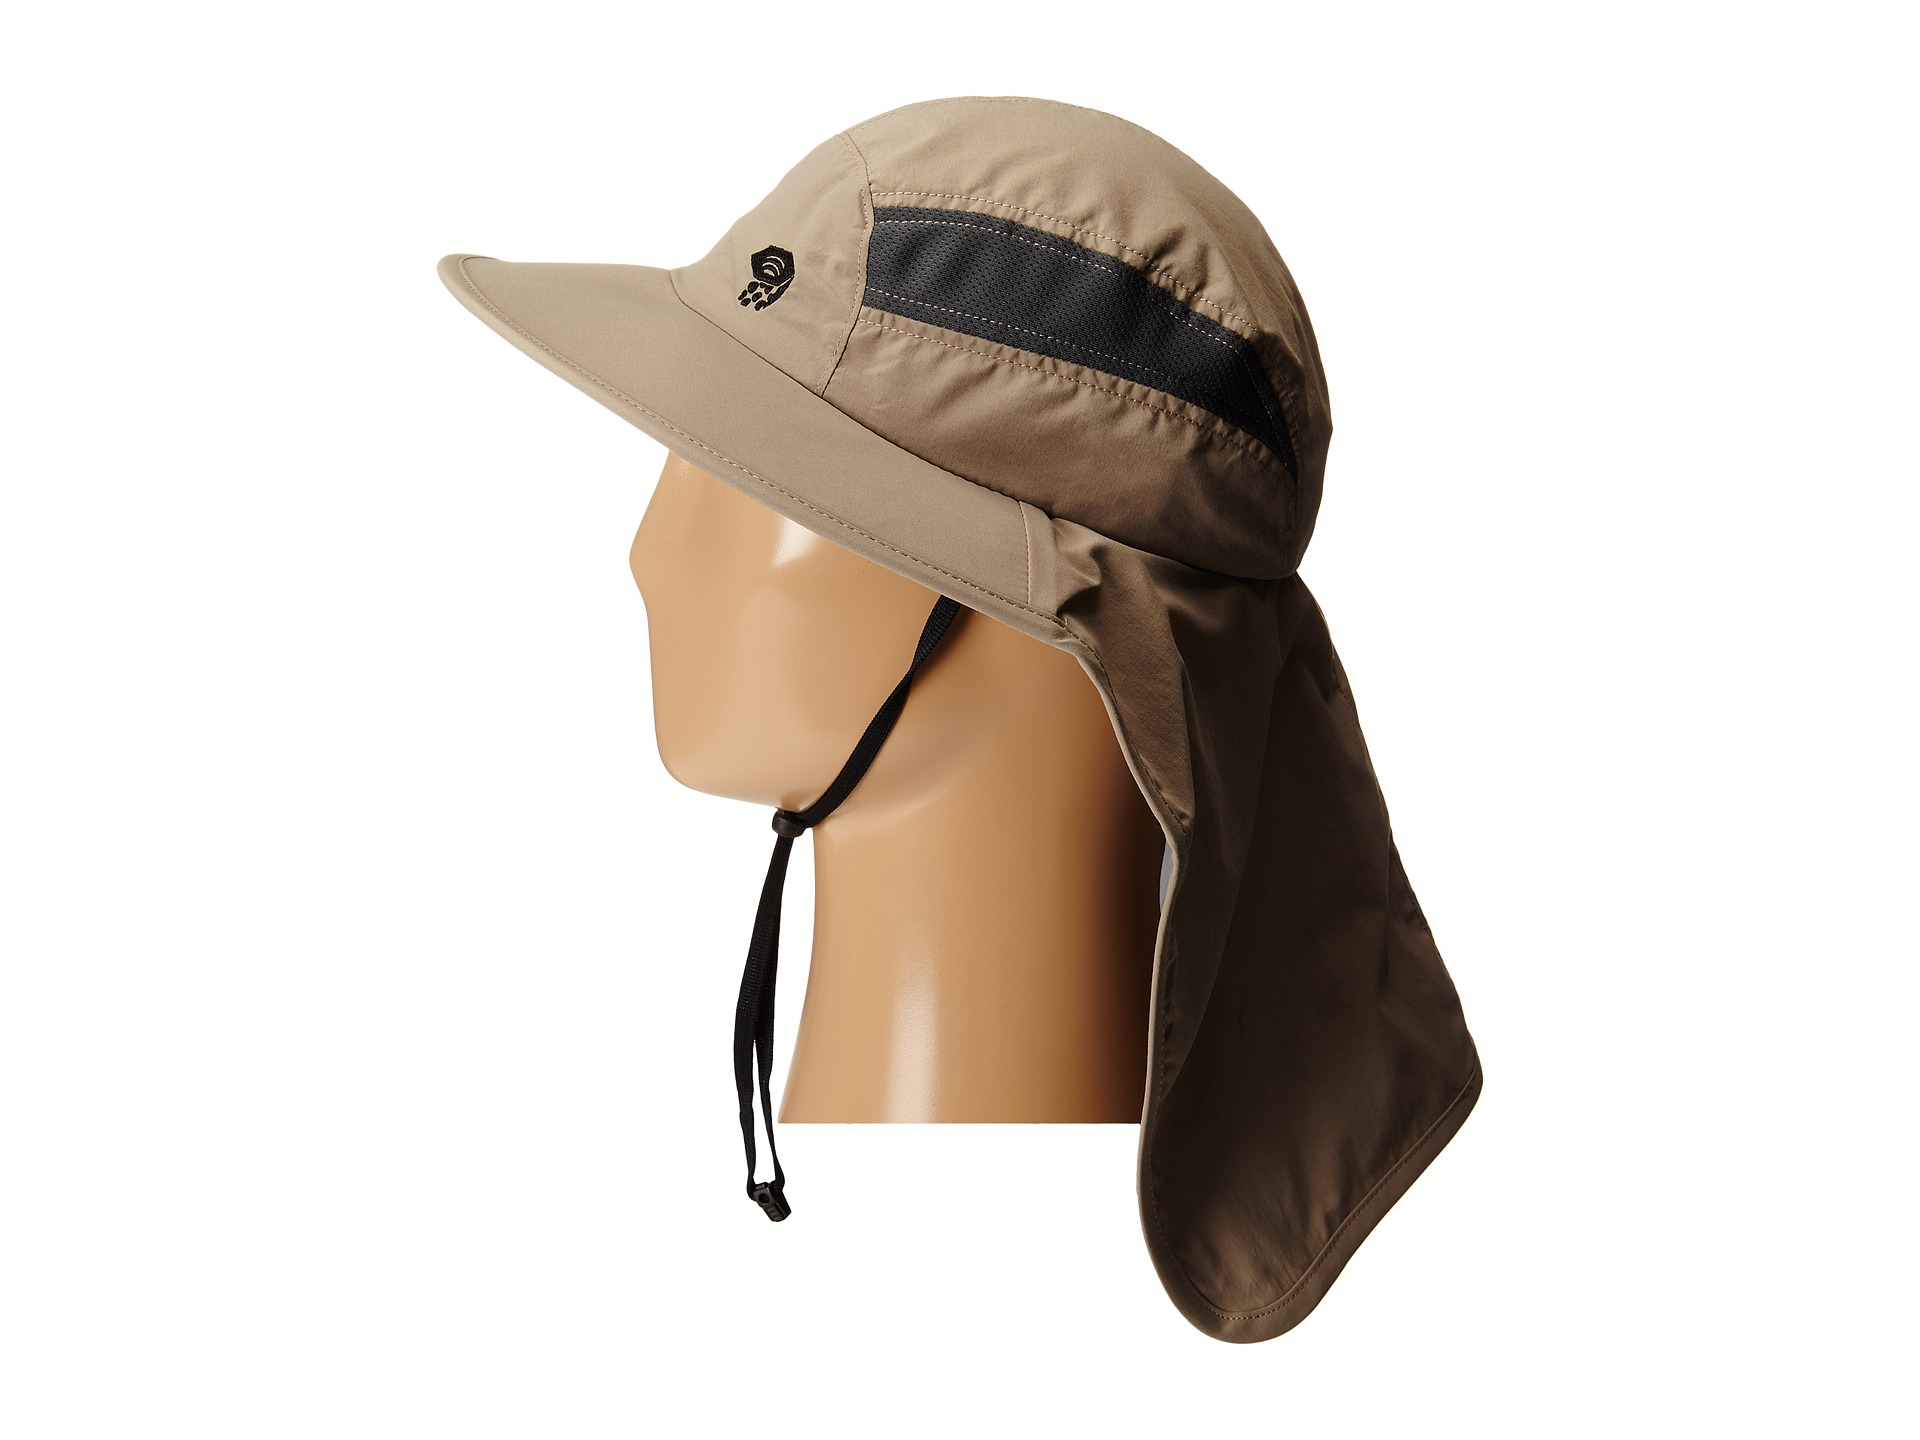 Lyst - Mountain Hardwear Canyon™ Wide Brim Ravi Hat in Natural for Men d6ead98bafb